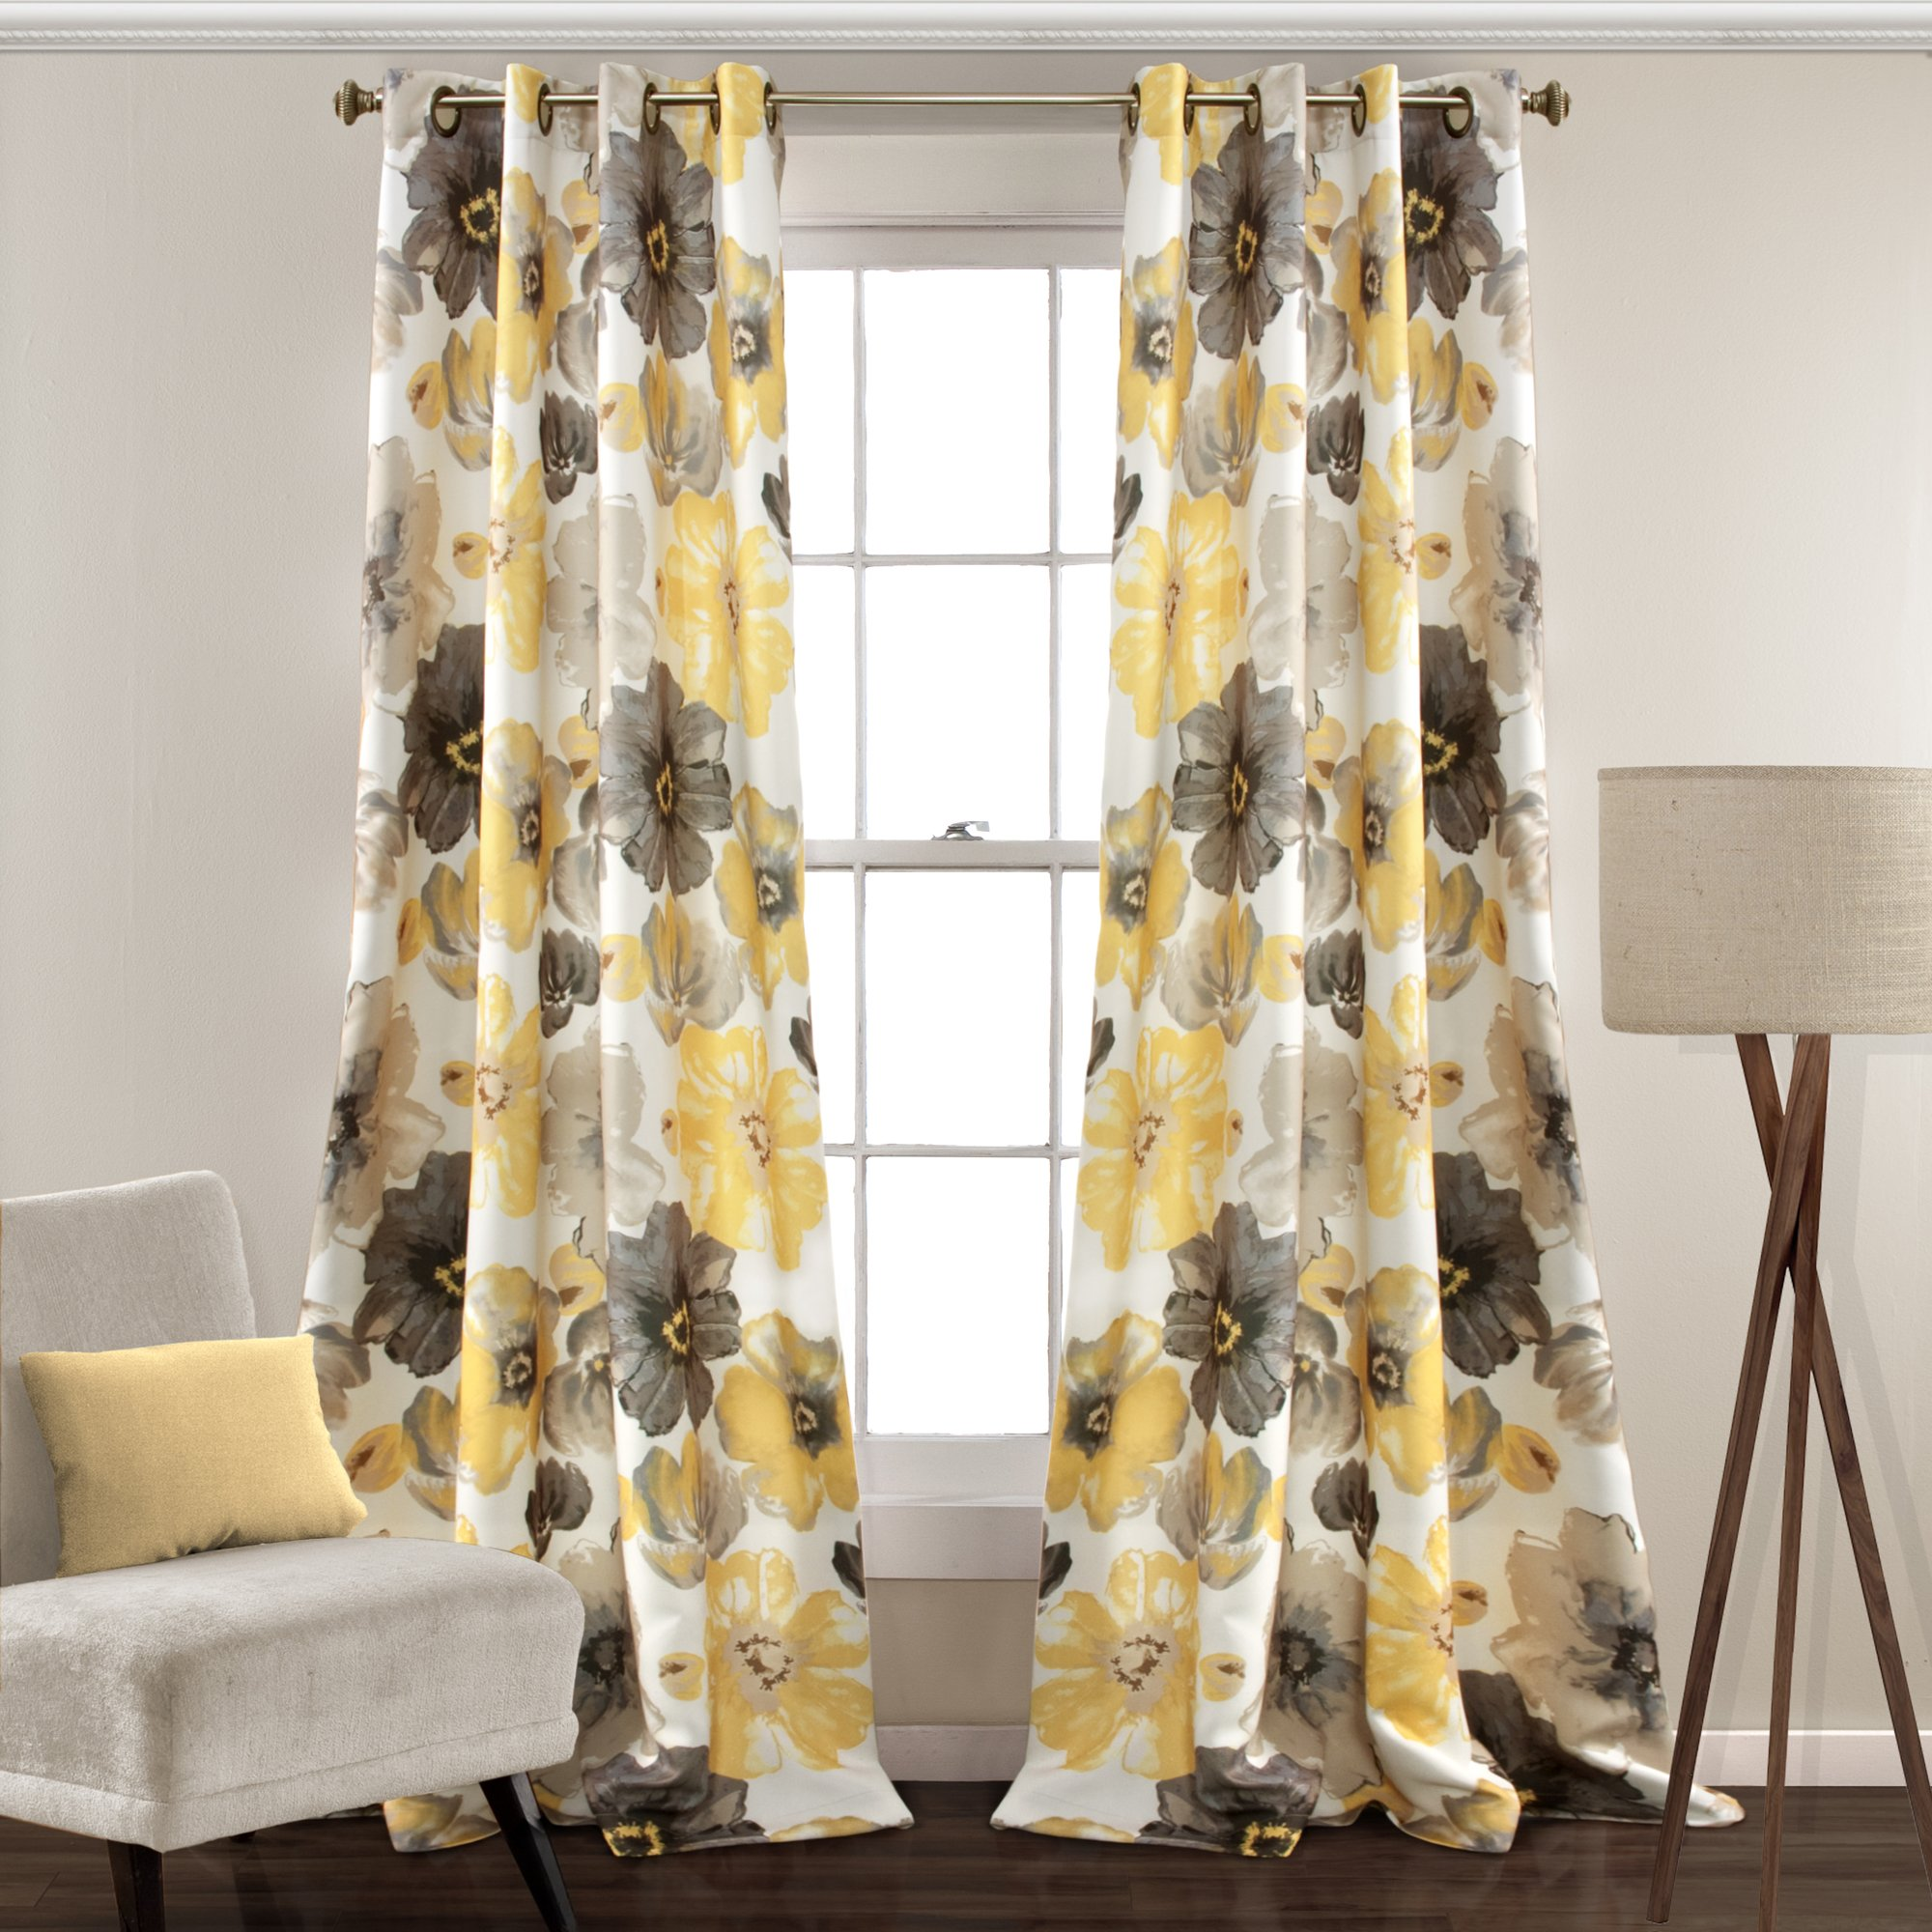 Lush Decor Leah Floral Room Darkening Window Panel Curtain Set for Living, Dining, Bedroom (Pair), 120'' x 52'' Yellow and Gray, L by Lush Decor